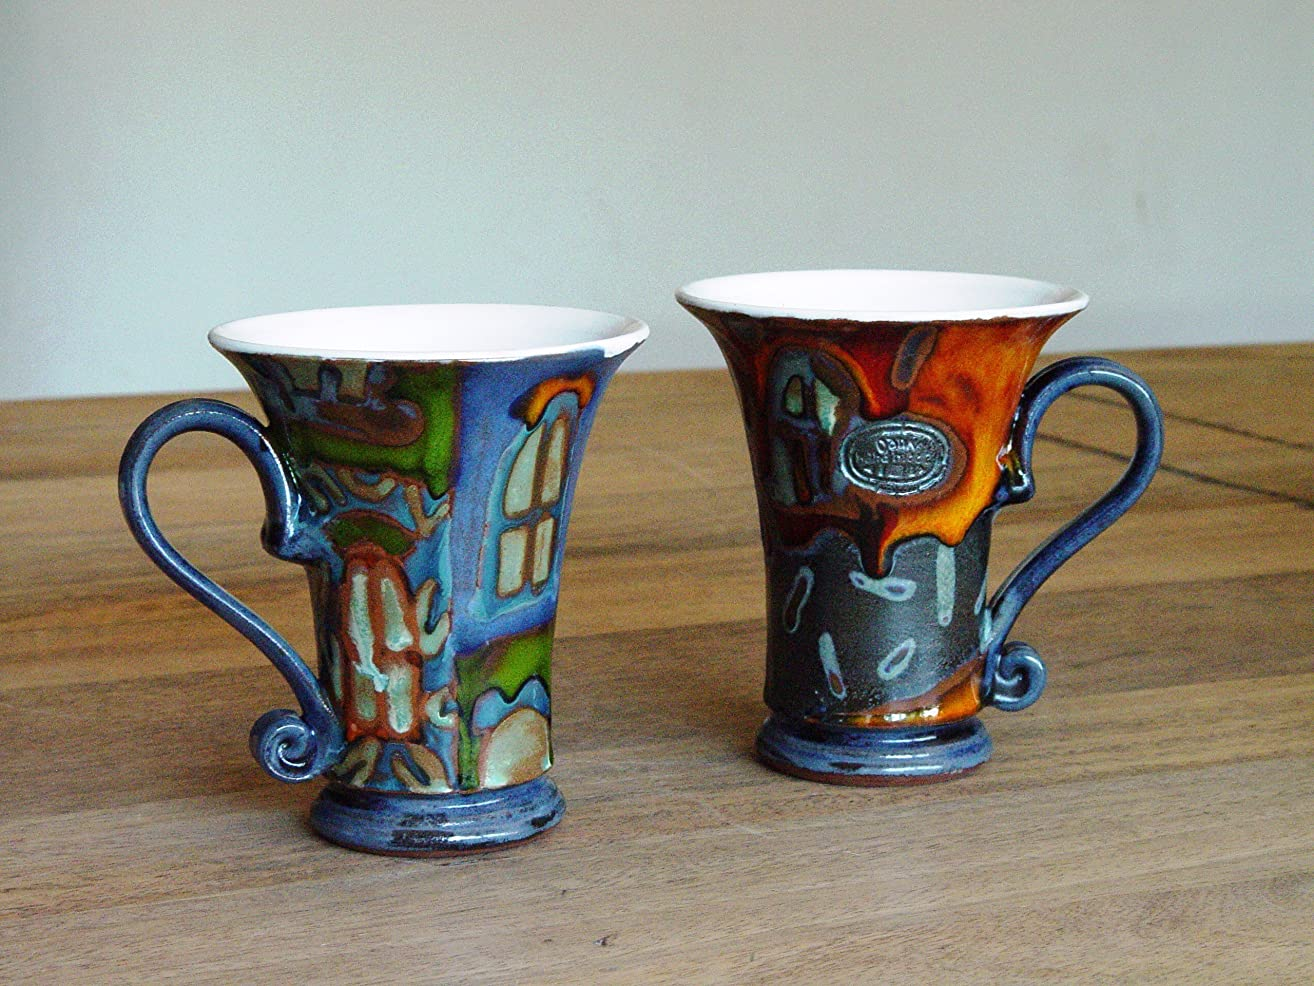 Set of Two Coffee Mugs, Colorful Ceramic Mugs with Unique Hand Painted Decoration, Danko Pottery